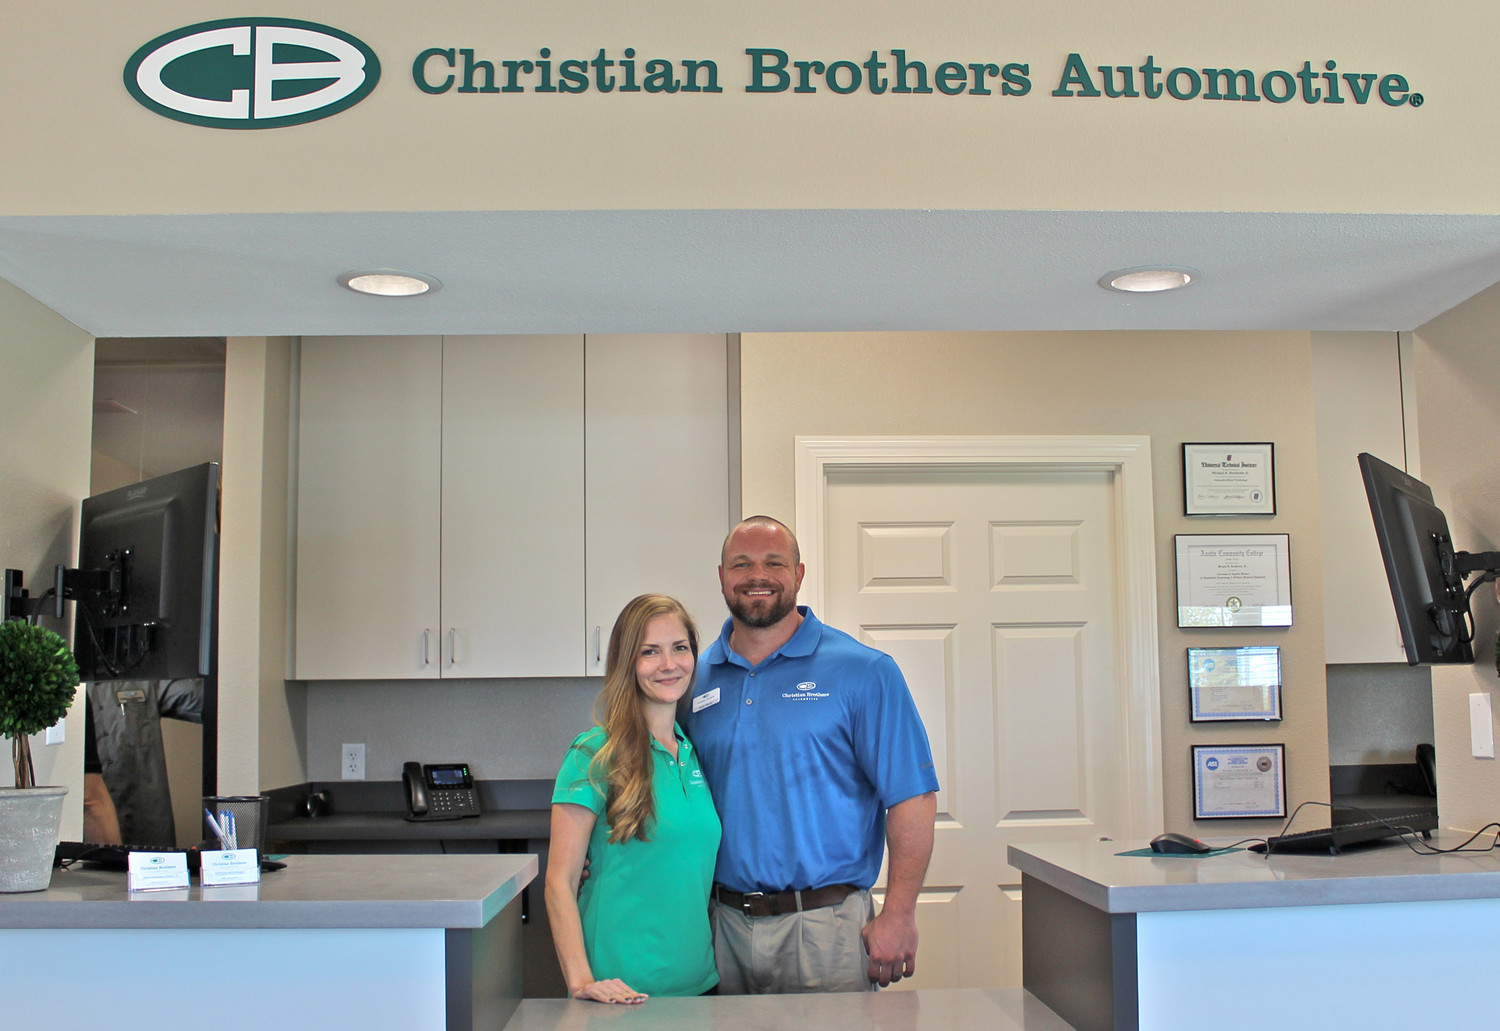 Owners Brad and Crystal Escue recently opened a new Christian Brothers Automotive franchise in Leander.